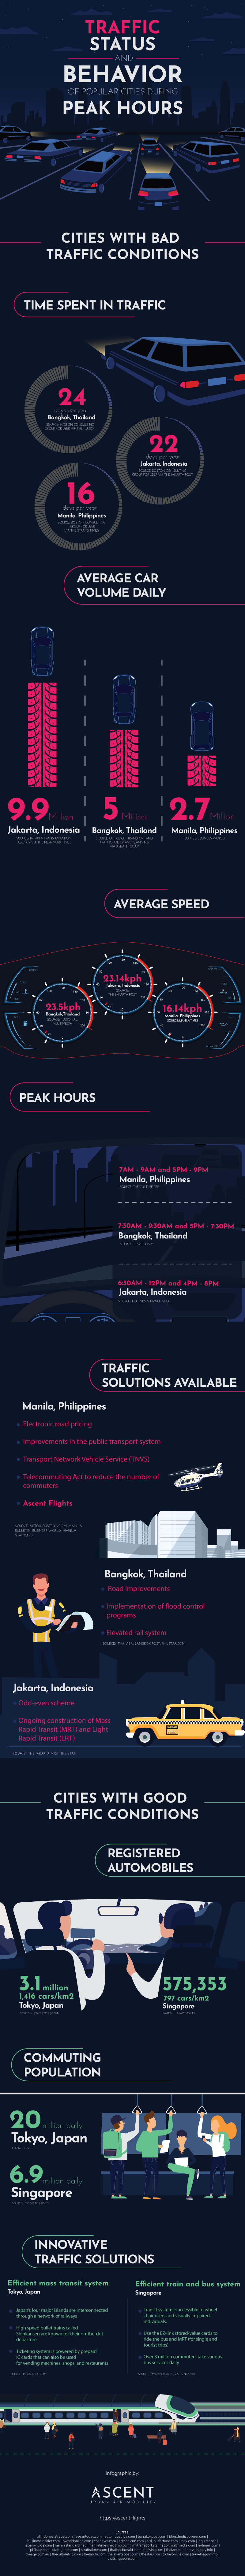 Traffic Status and Behavior of Popular Cities During Peak Hours - Infographic